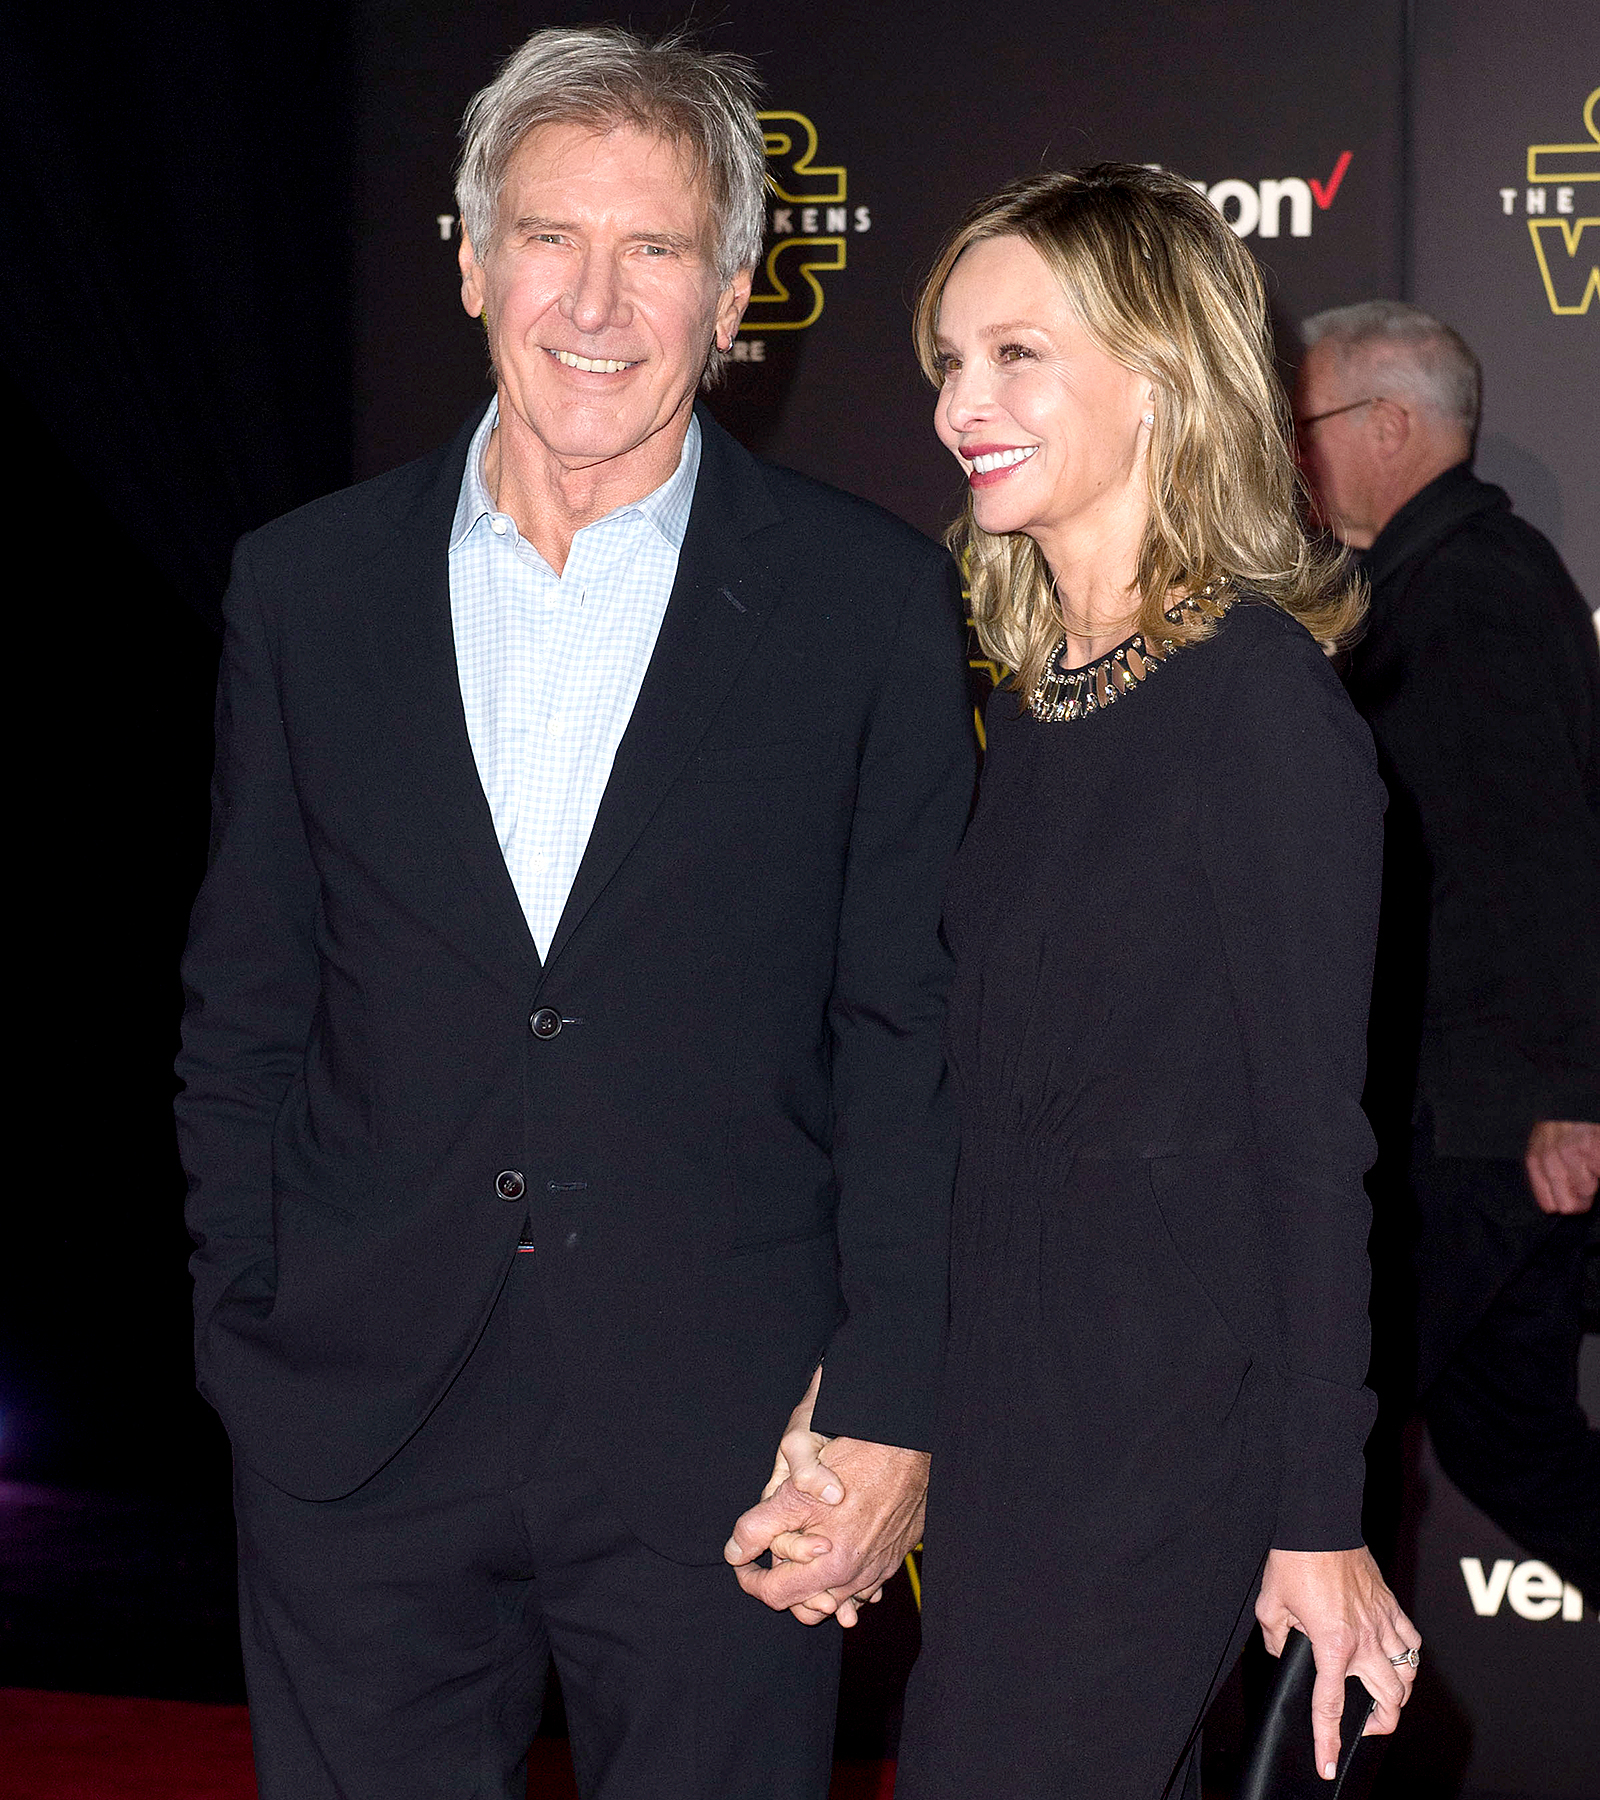 Harrison Ford and Calista Flockhart attend the world premiere of